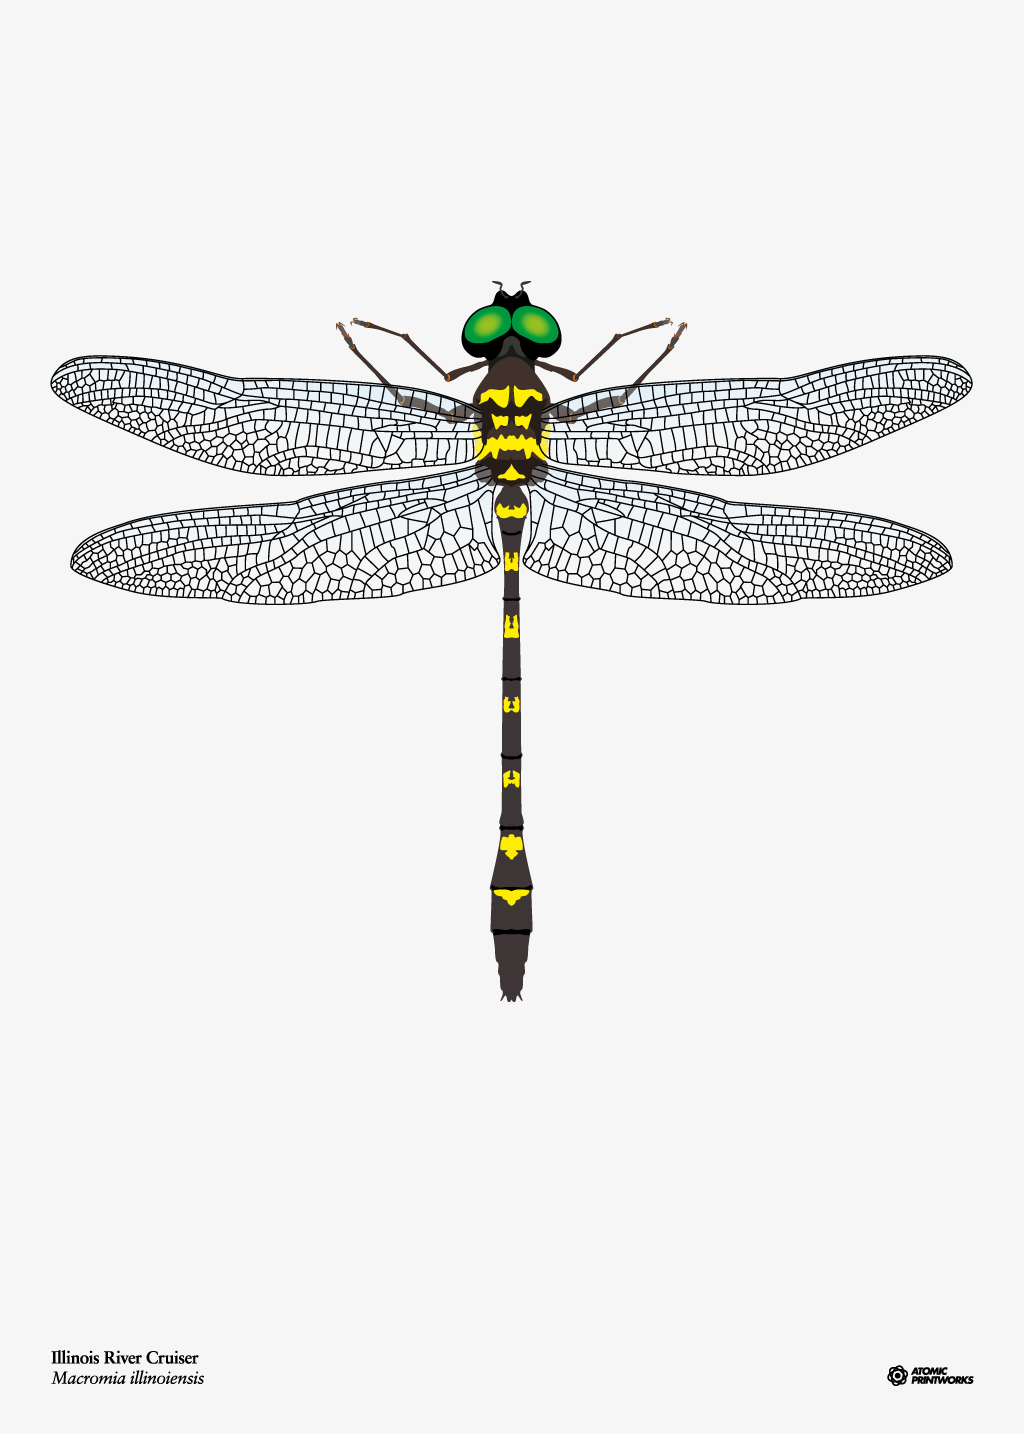 Illinois River Cruiser dragonfly print